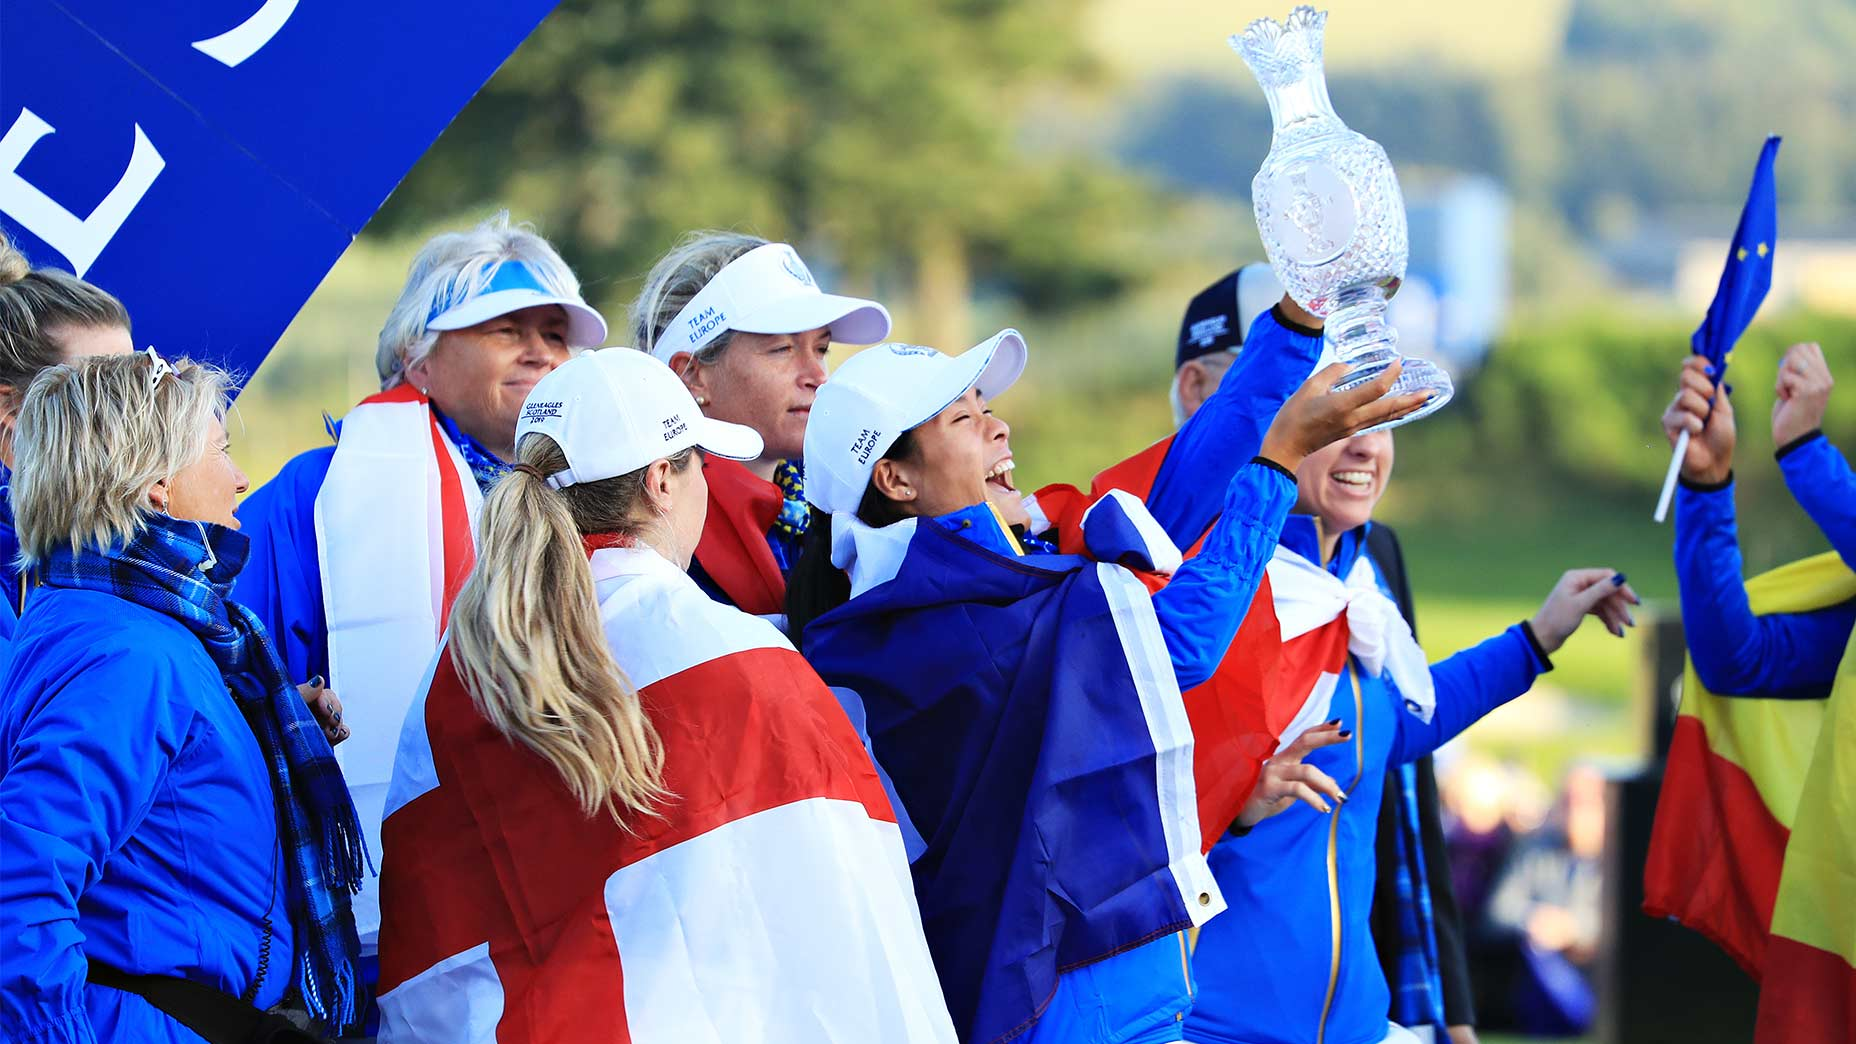 Case Study: The 2021 Solheim Cup Kick-Off Event